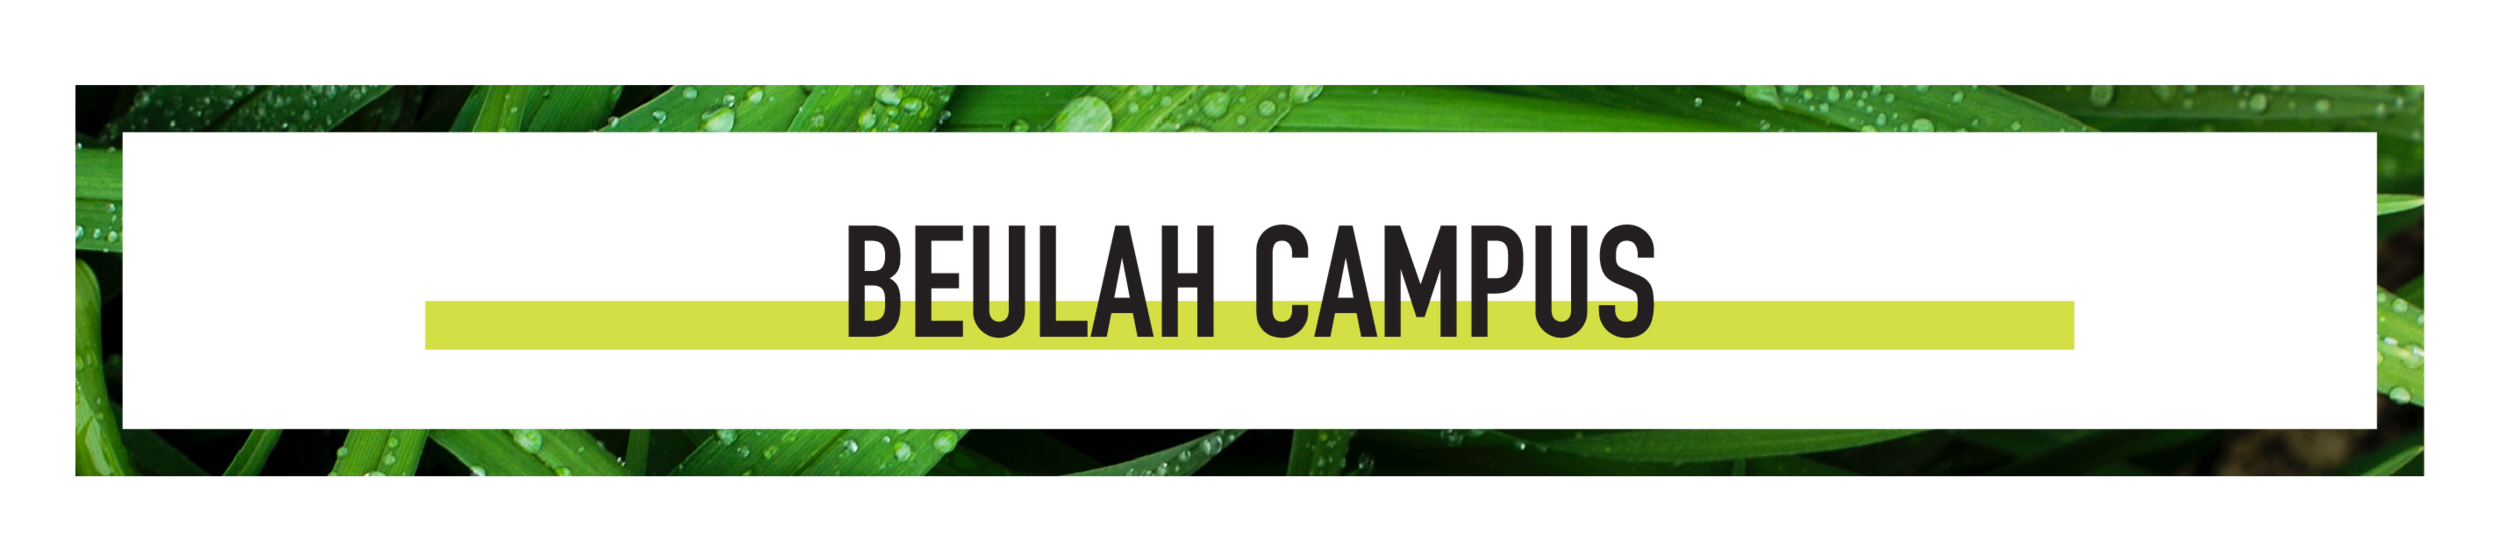 Beulah Campus - Get Connected-01.png